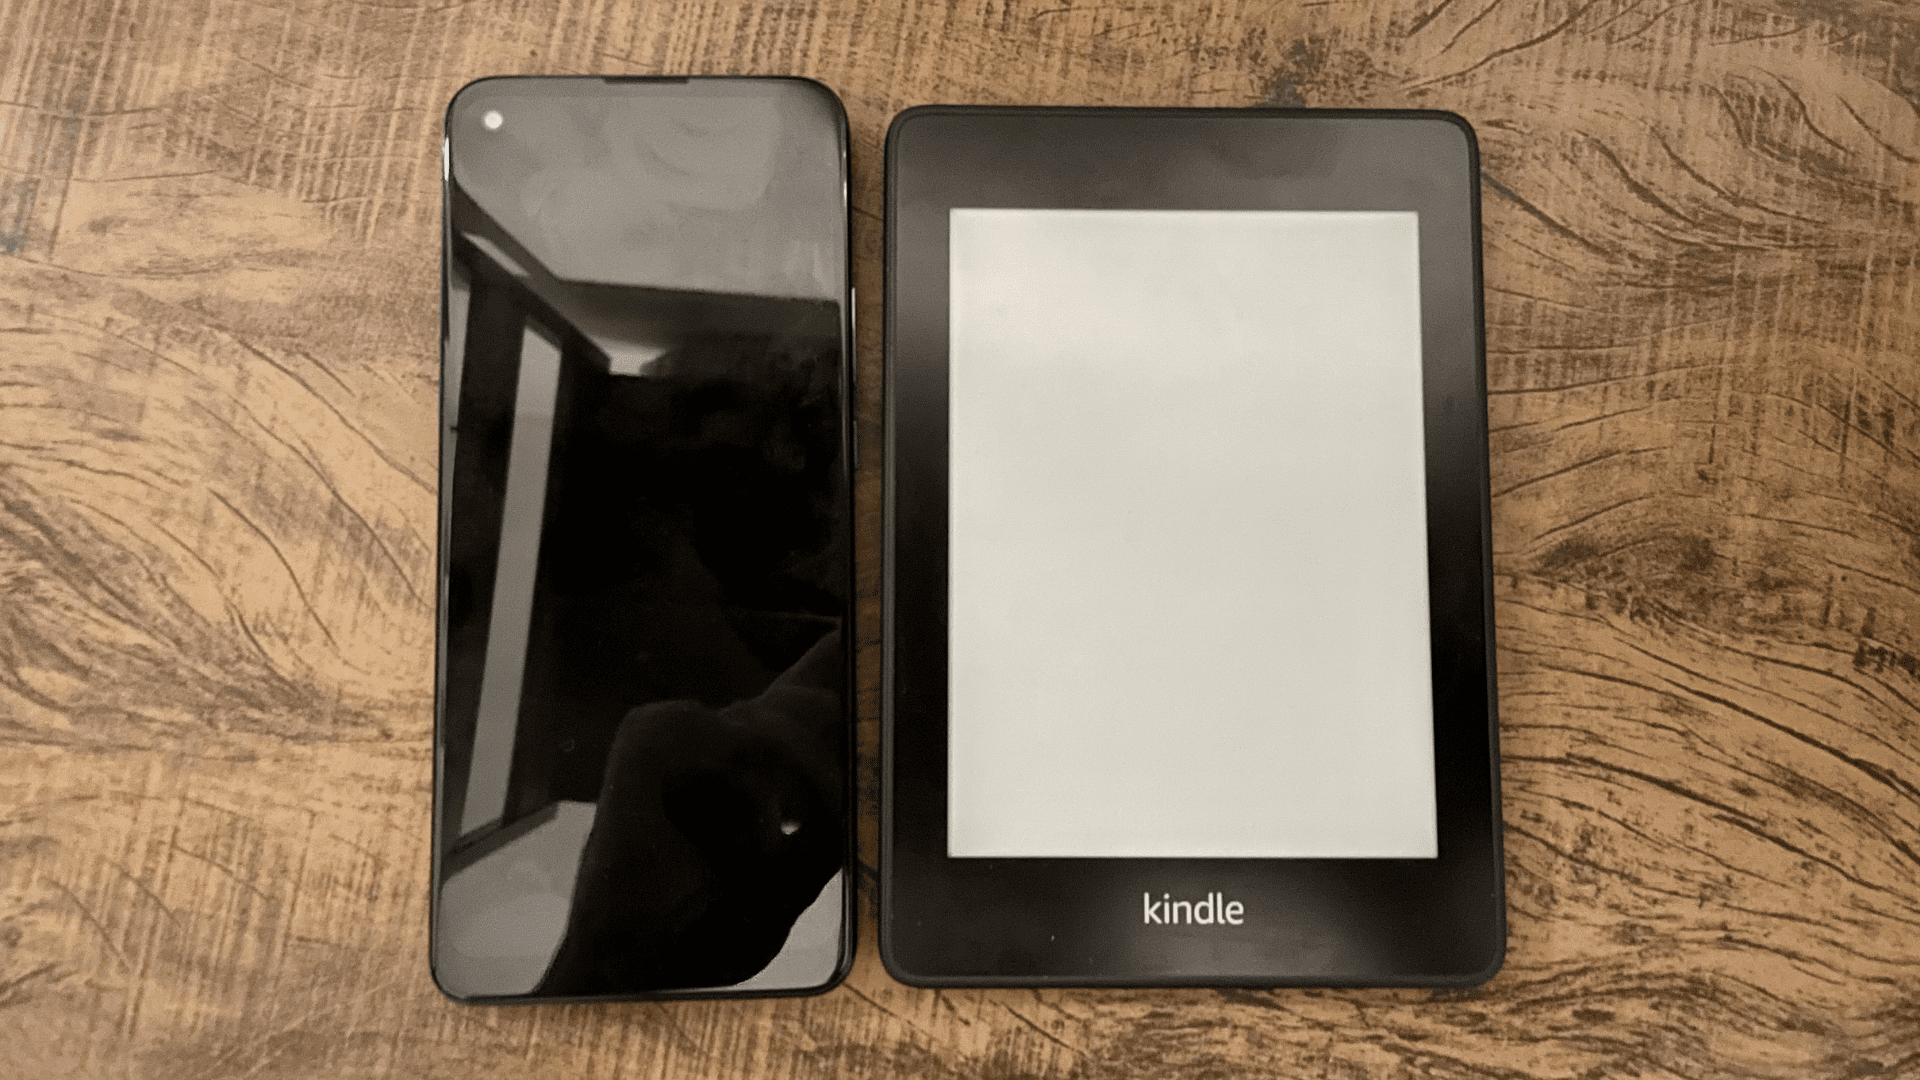 Moto G9 Power ao lado do e-reader Kindle Paperwhite (Foto: Gabriel Fricke / Zoom)